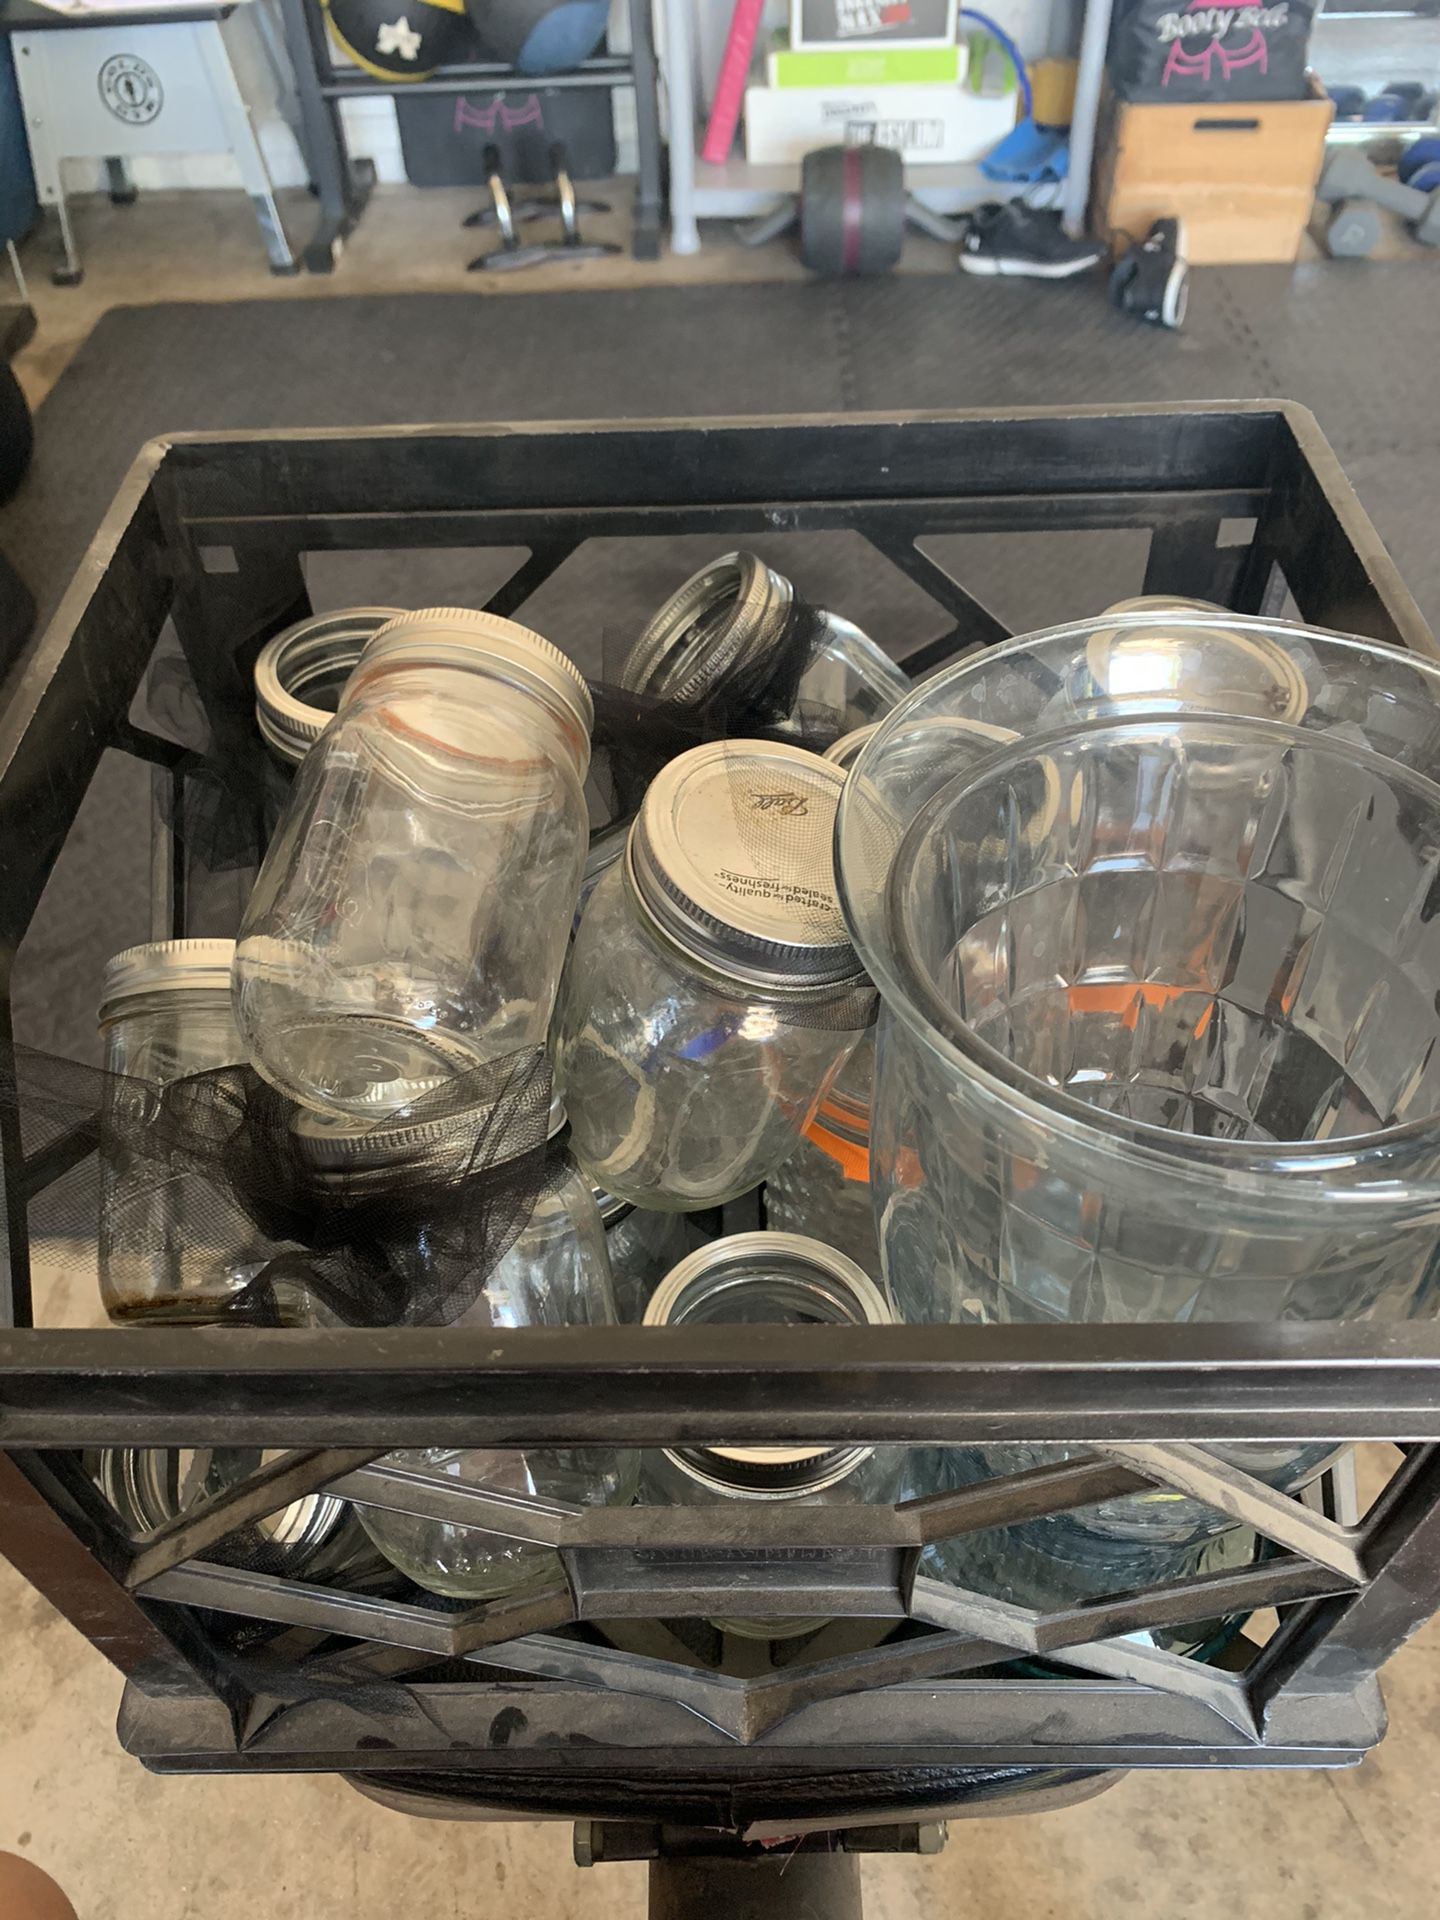 Crate of multiple mason jars and other glassware